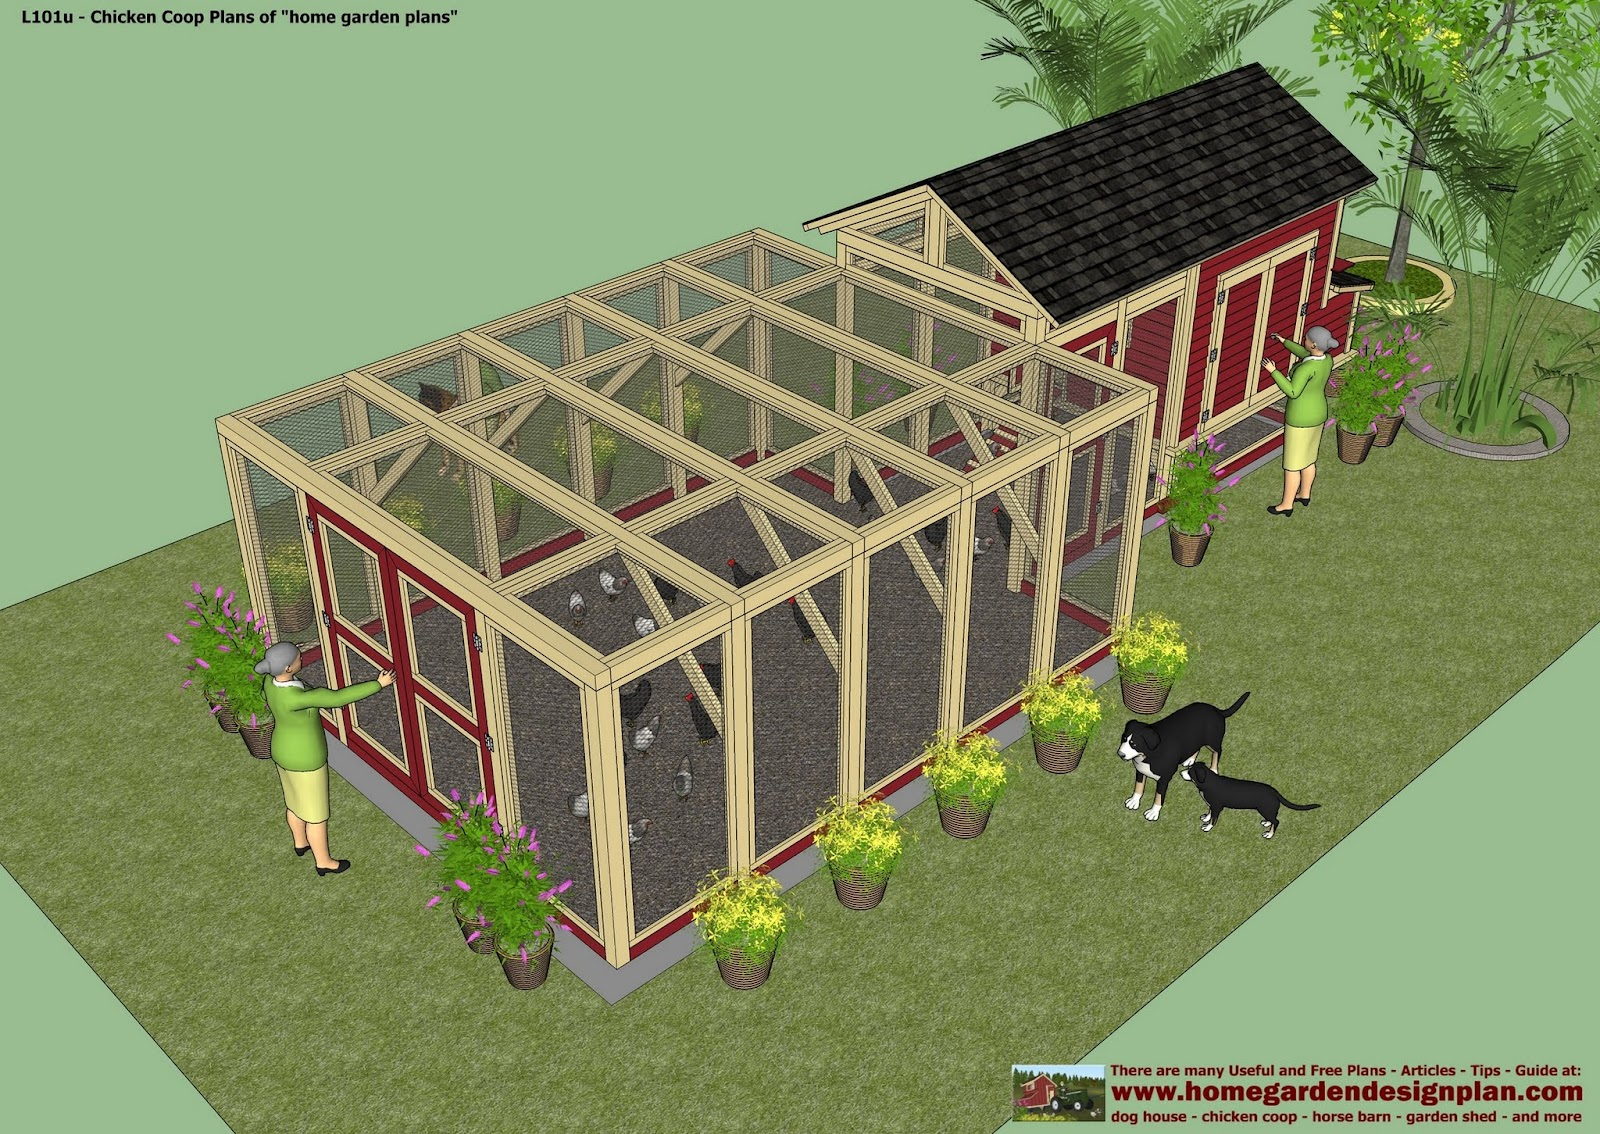 Home garden plans l101 chicken coop plans construction for Plans for chicken coops